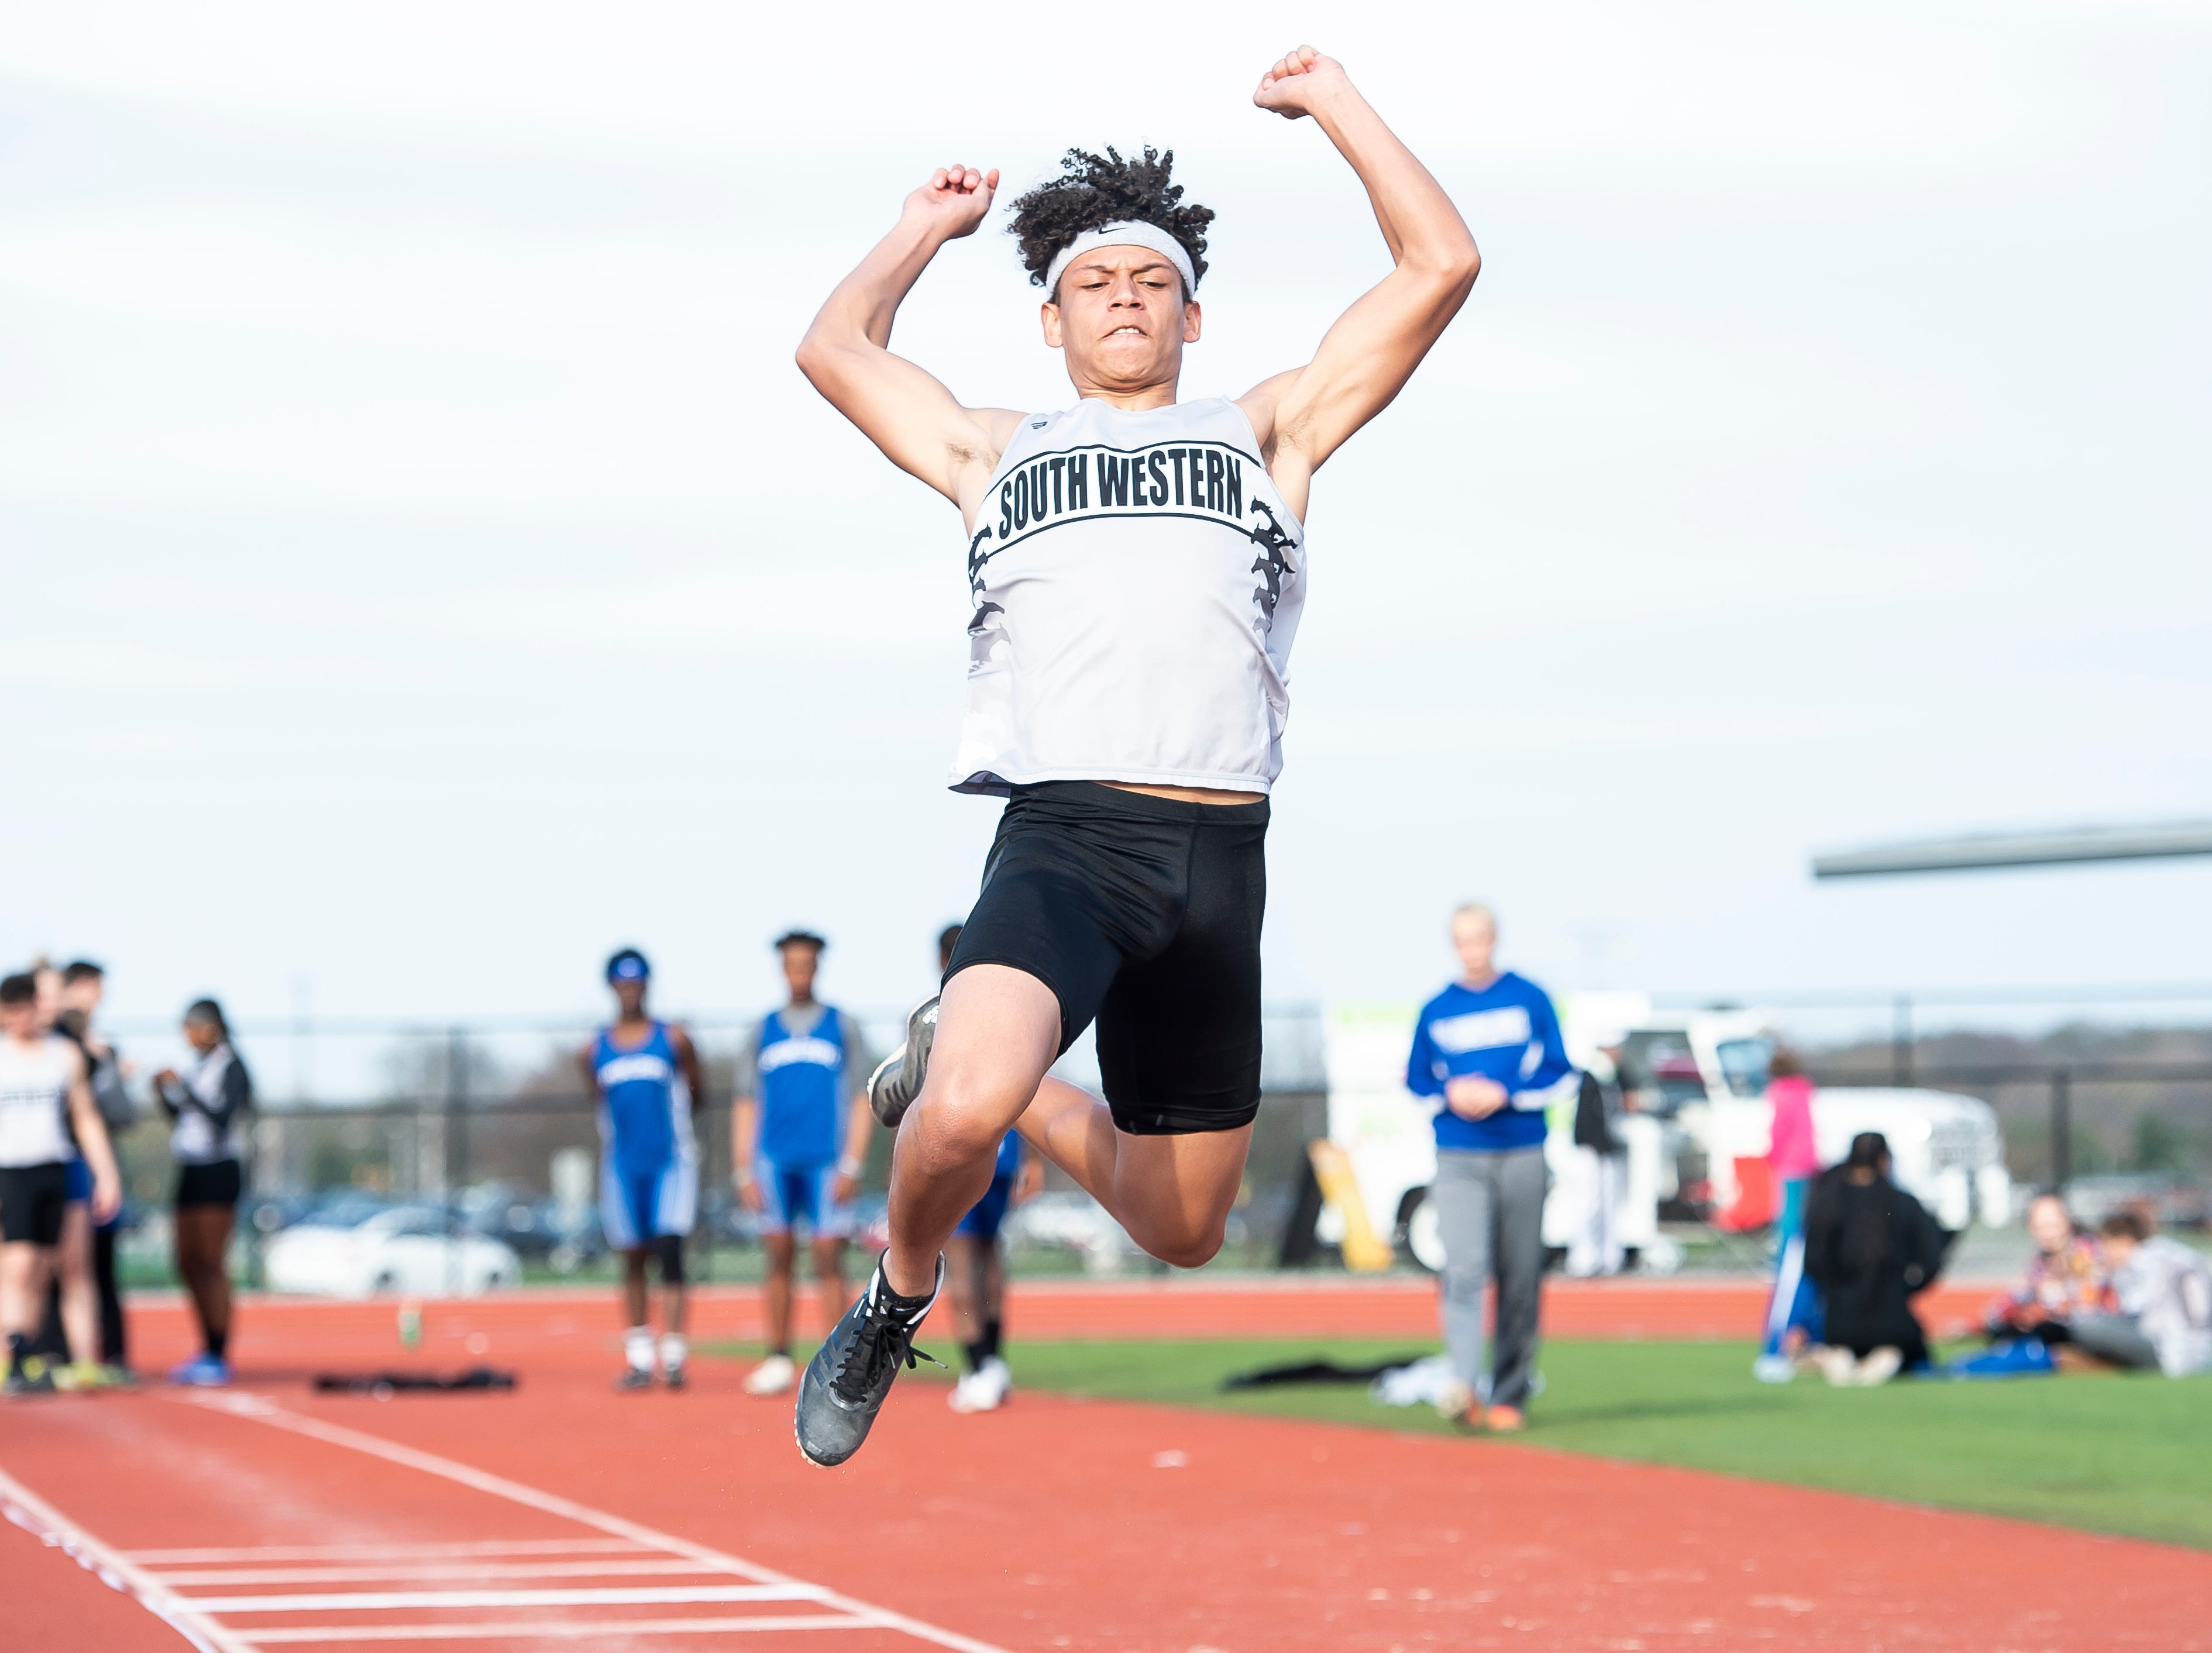 South Western's Jalen Bradford competes in the triple jump during a track and field meet against Spring Grove on Thursday, April 11, 2019.